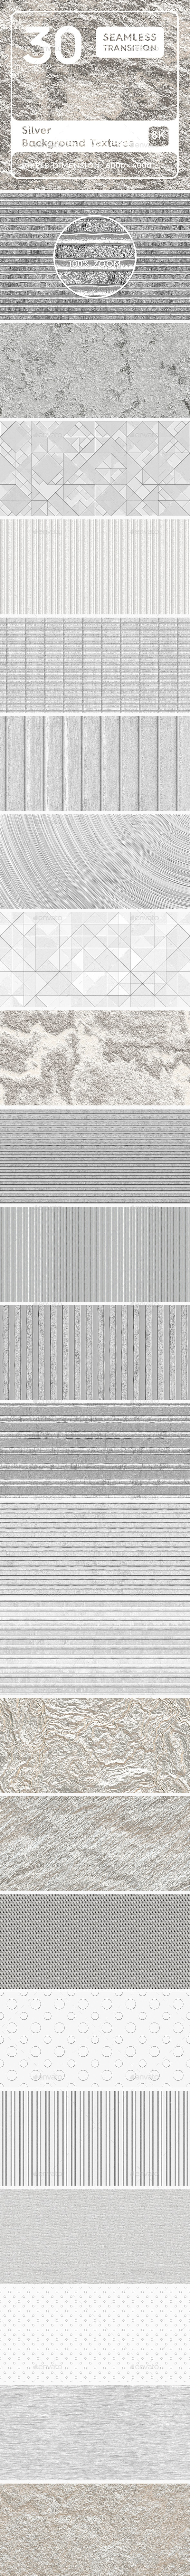 30 Silver Background Textures. Seamless Transition. - Abstract Backgrounds